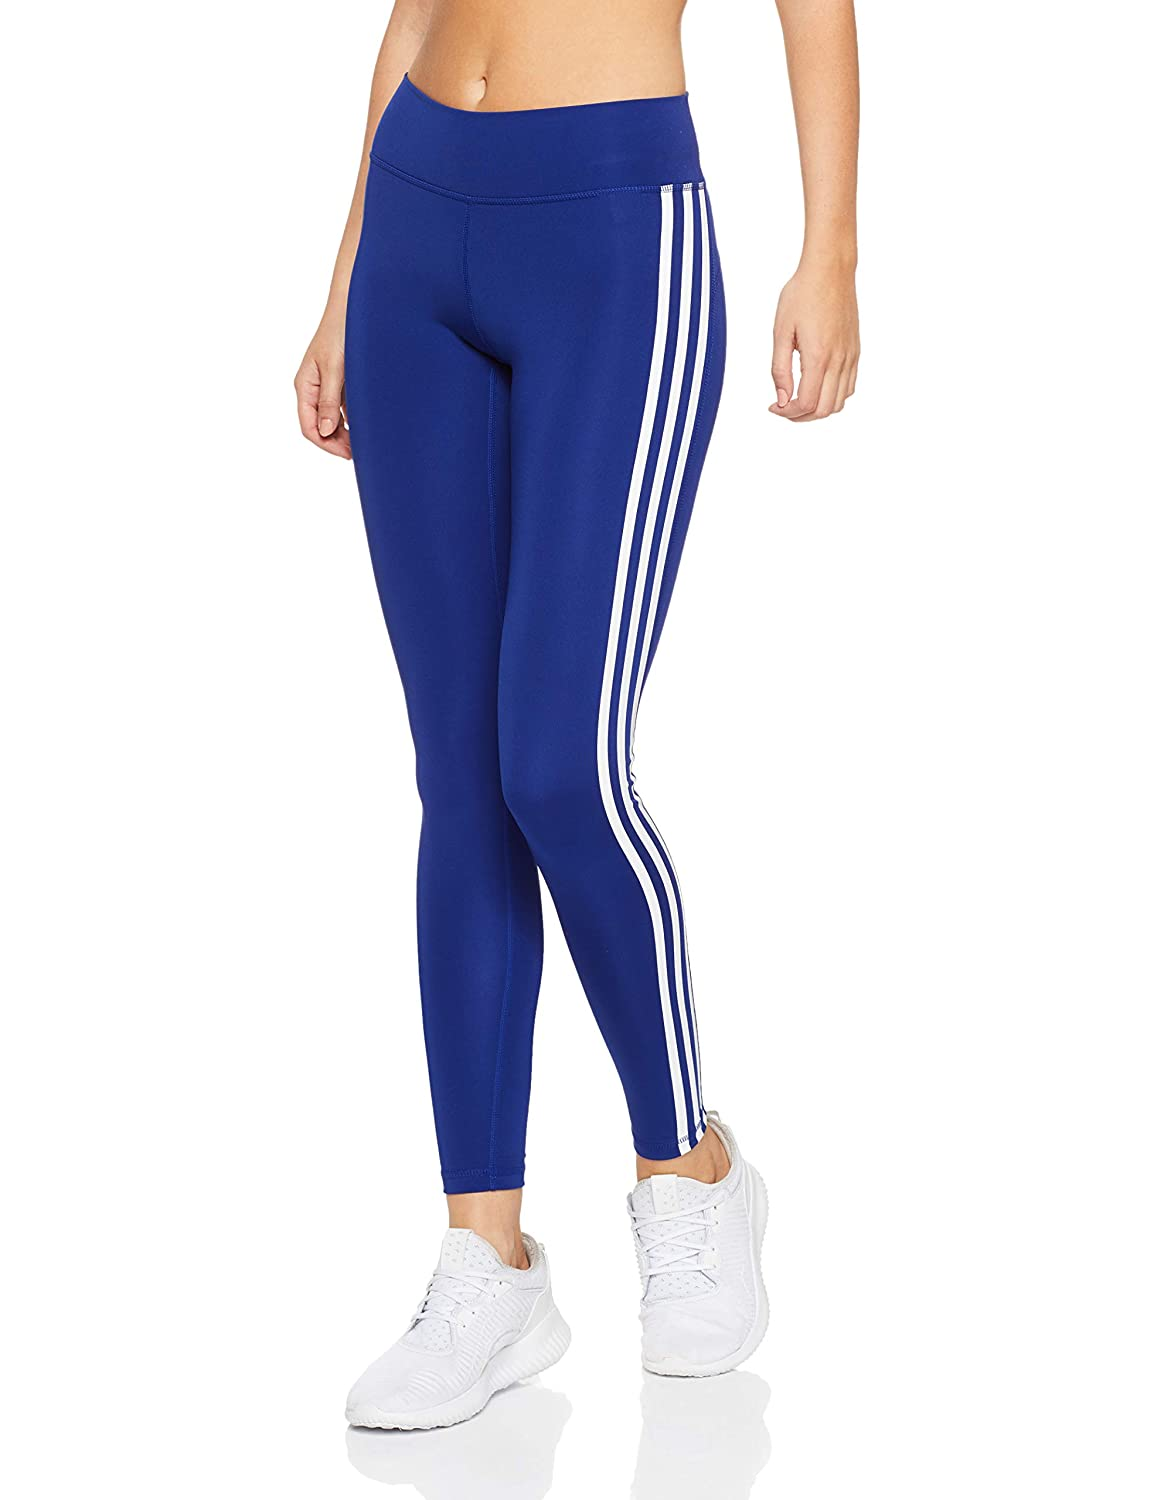 adidas 3Stripes Women's Believe This Regular Rise Solid Tight, Womens, CZ7949